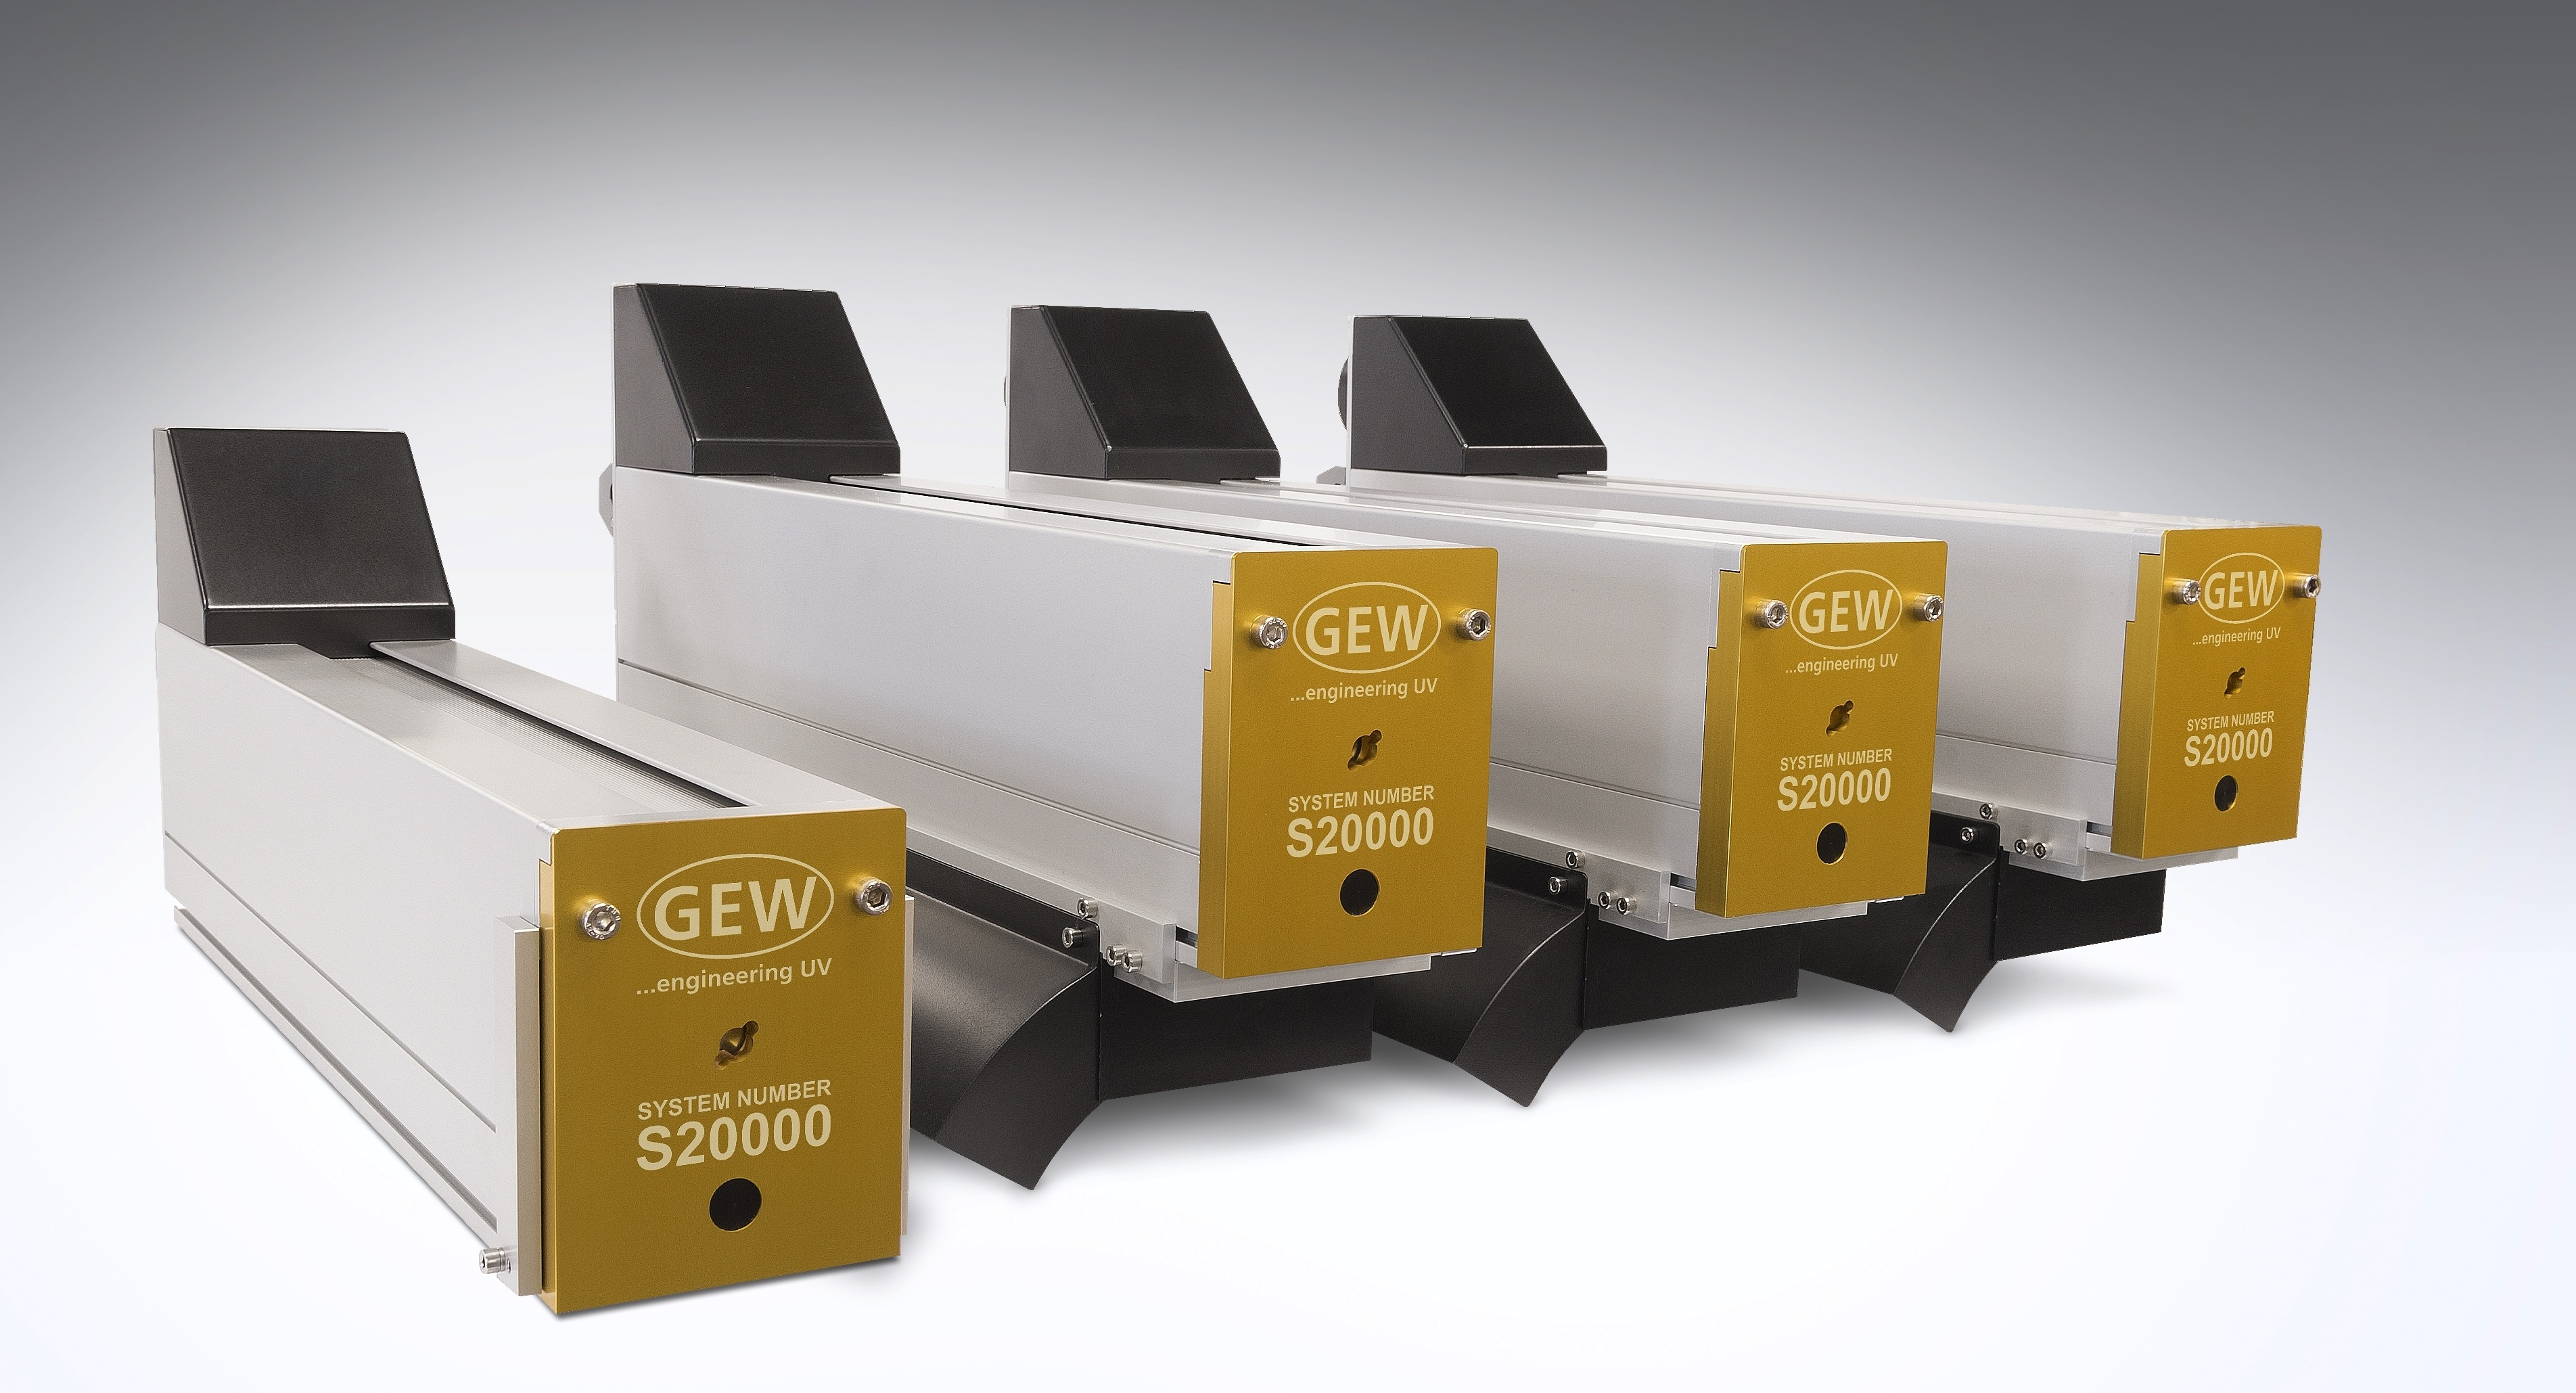 GEW celebrates 20,000th installation